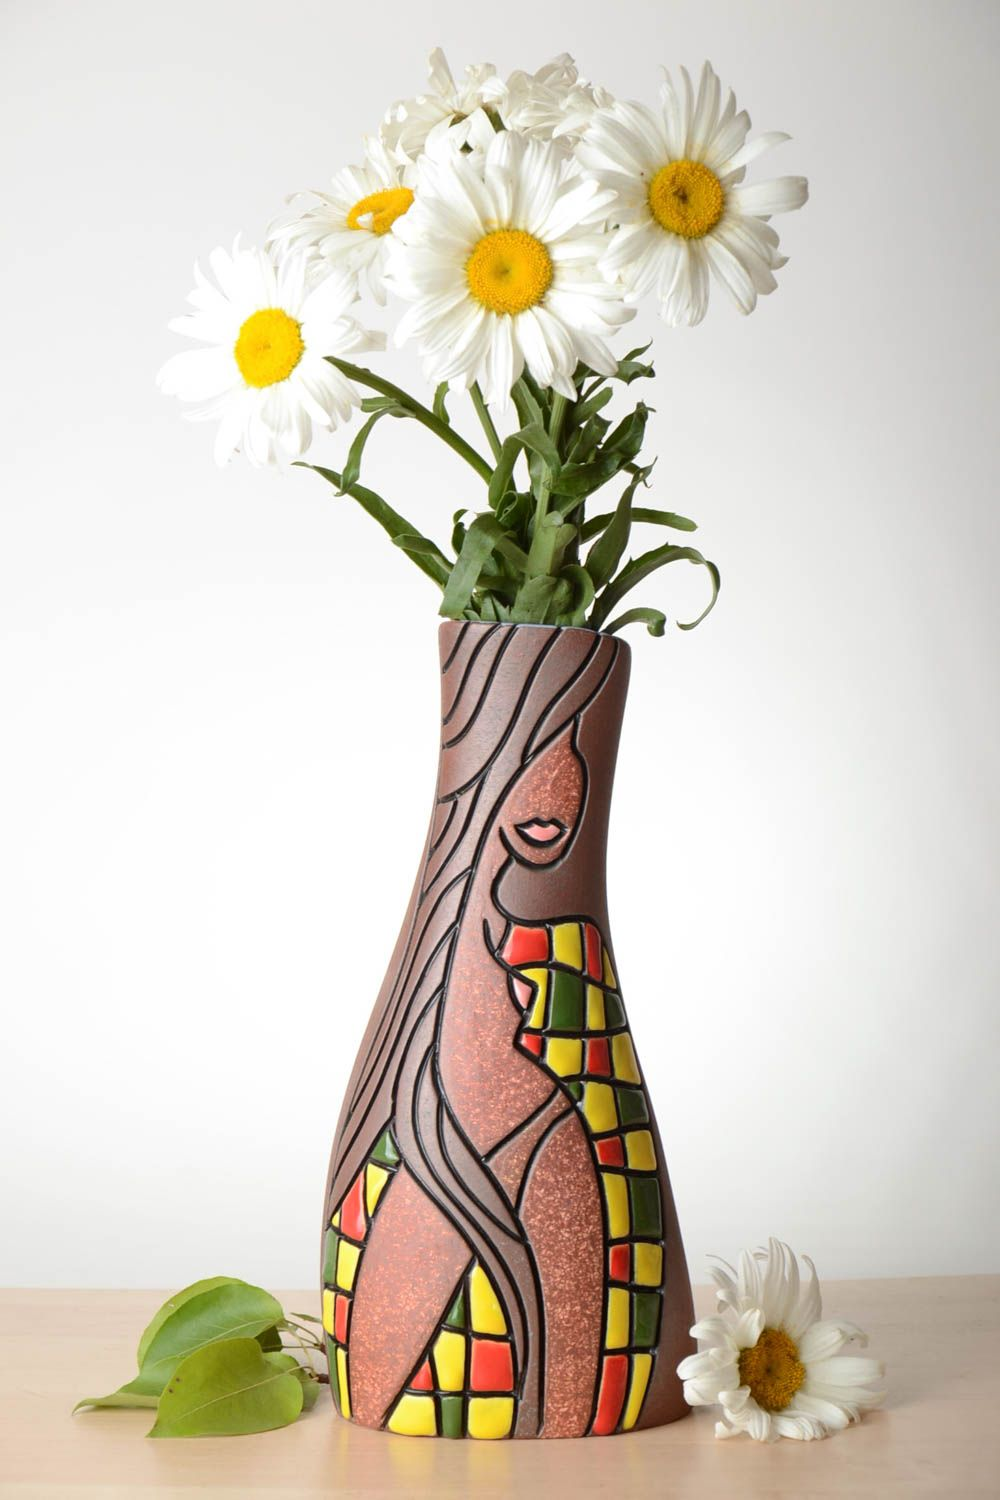 vases Unusual handmade ceramic vase 1.7 l decorative clay vase flower vase design - MADEheart. & Madeheart.com